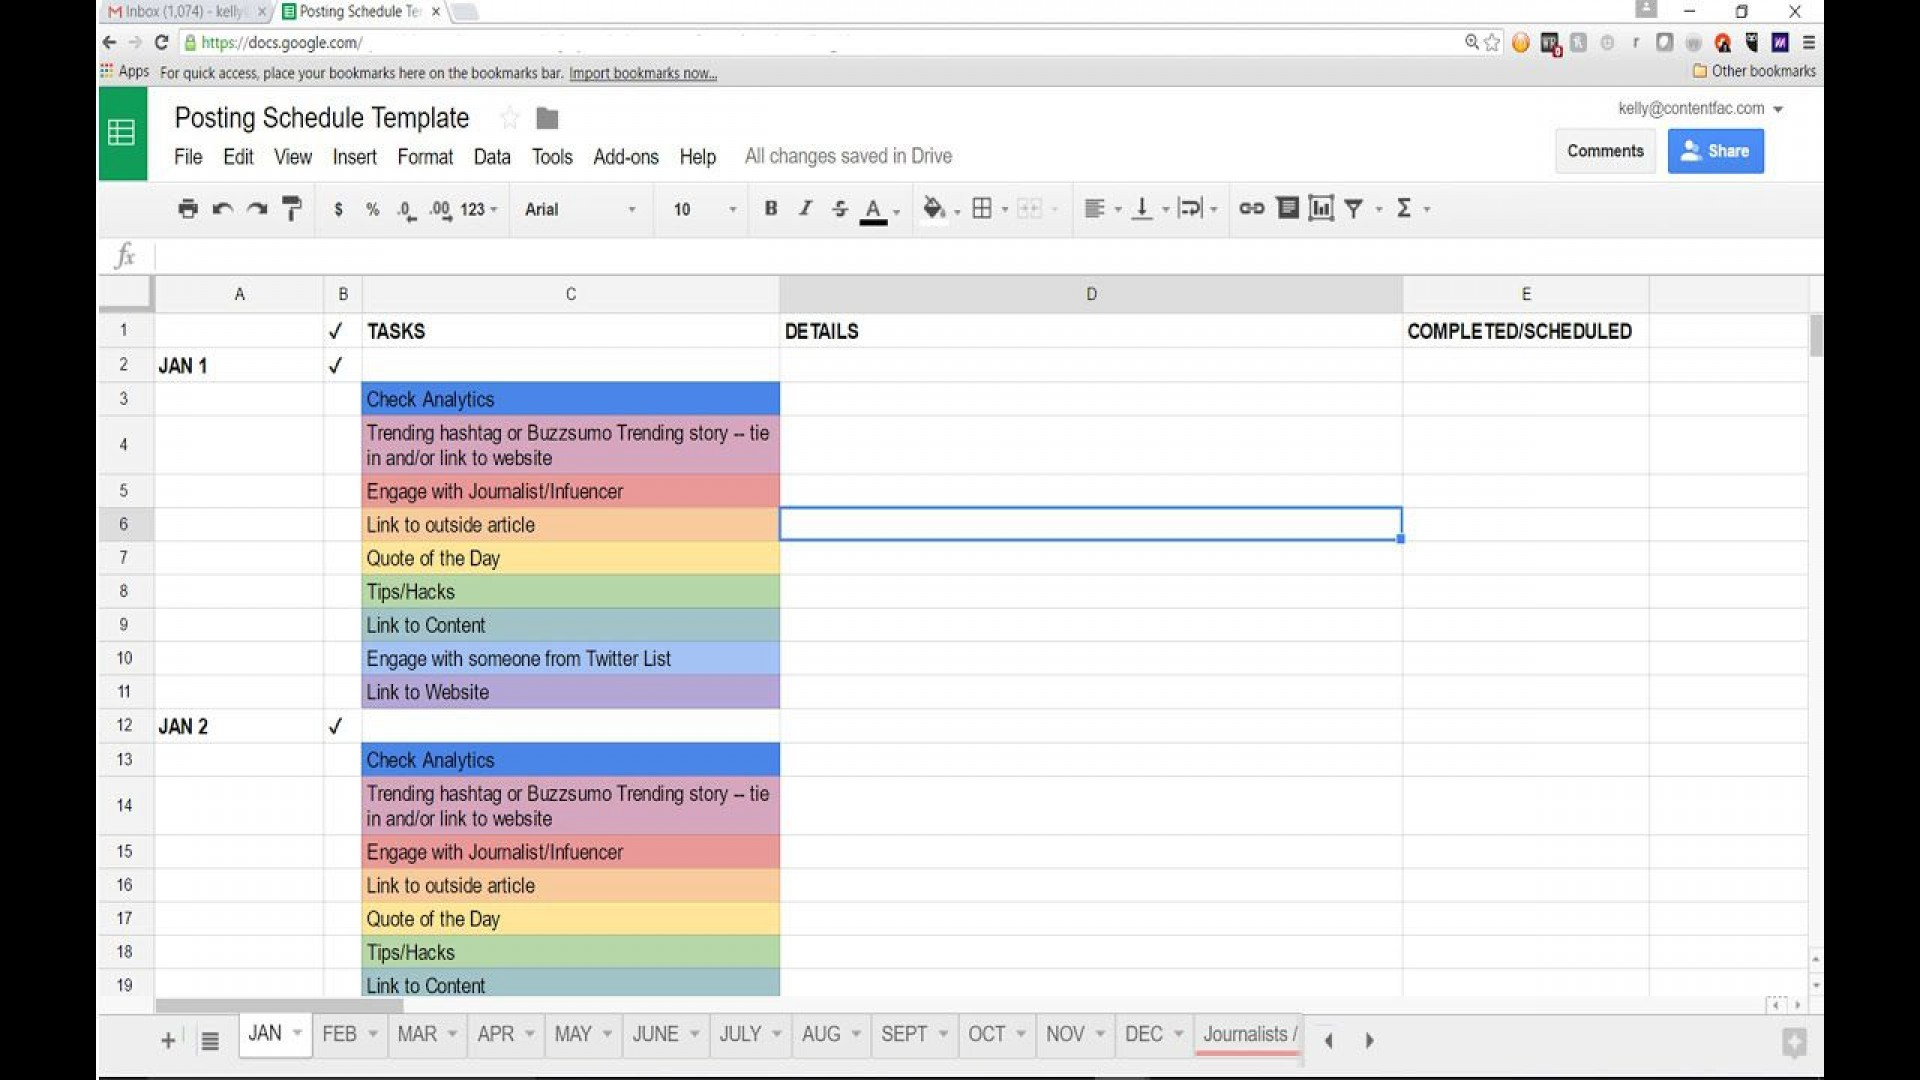 006 Archaicawful Social Media Editorial Calendar Template Photo  Content Excel 2020 Free Download1920